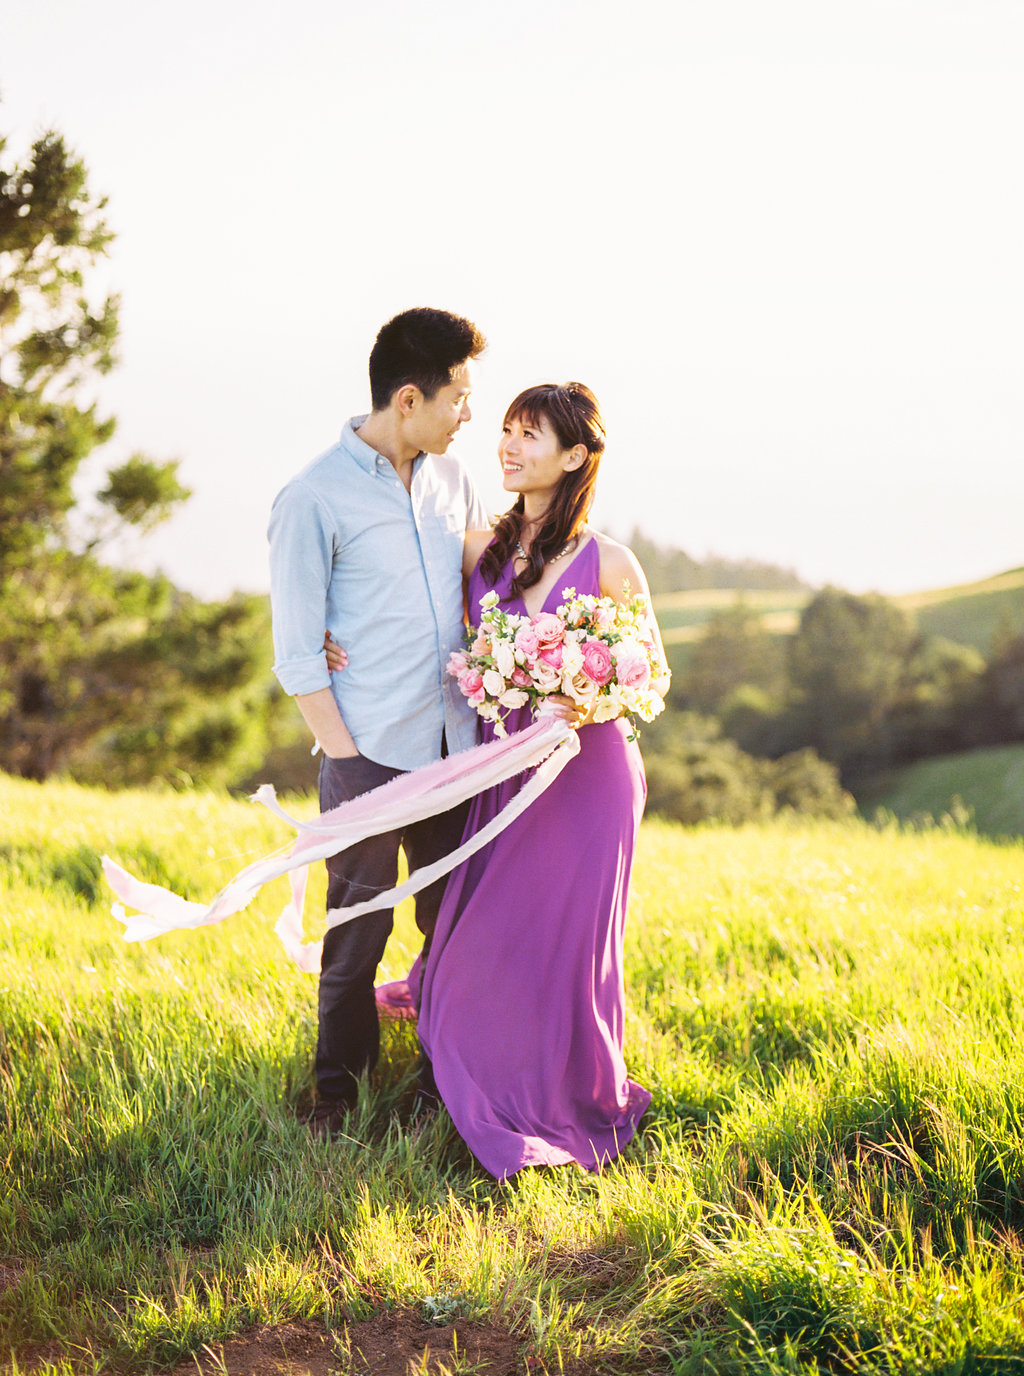 Engagement shoot on grassy hills with violet dress and pretty floral bouquet with white and lavender silk velvet ribbons